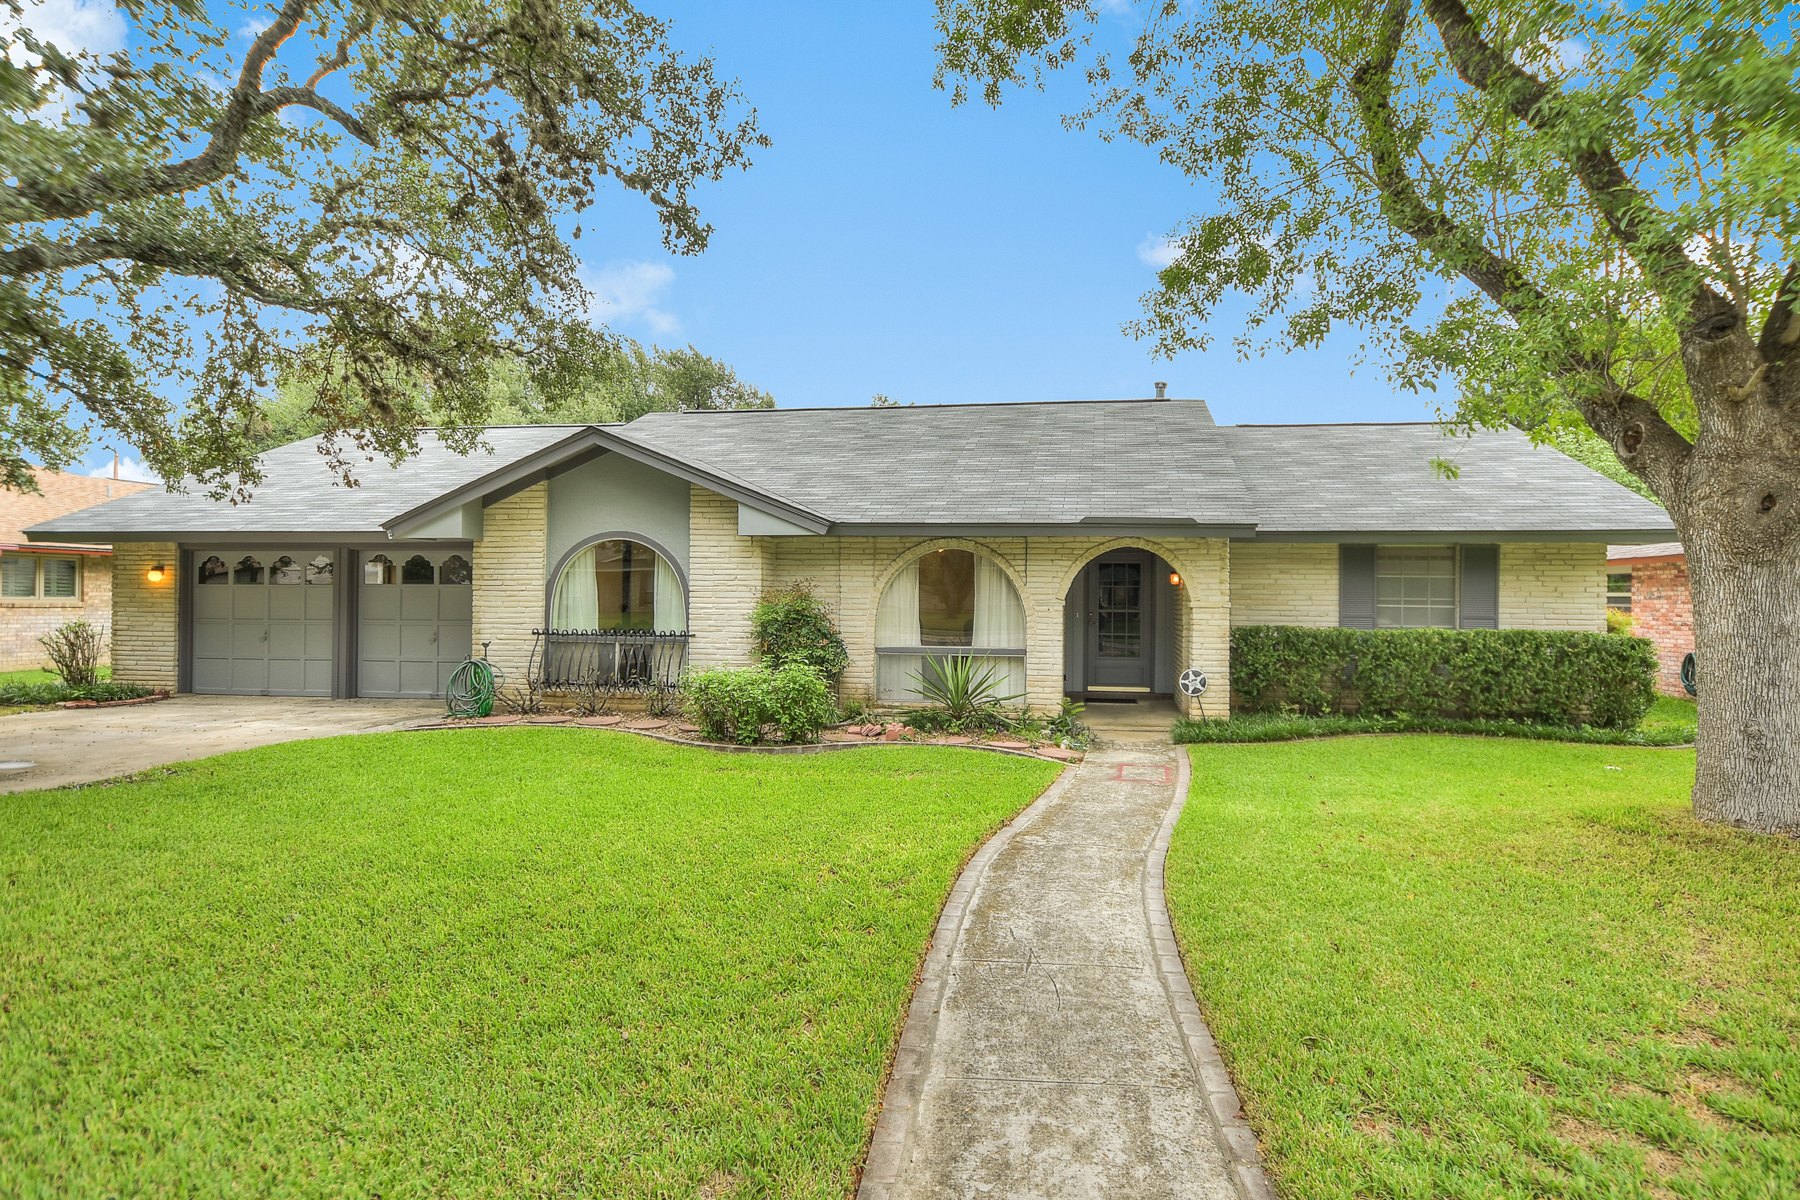 Single Family Home for Sale at Lovely Home in Regency Place 10218 Severn Rd San Antonio, Texas 78217 United States